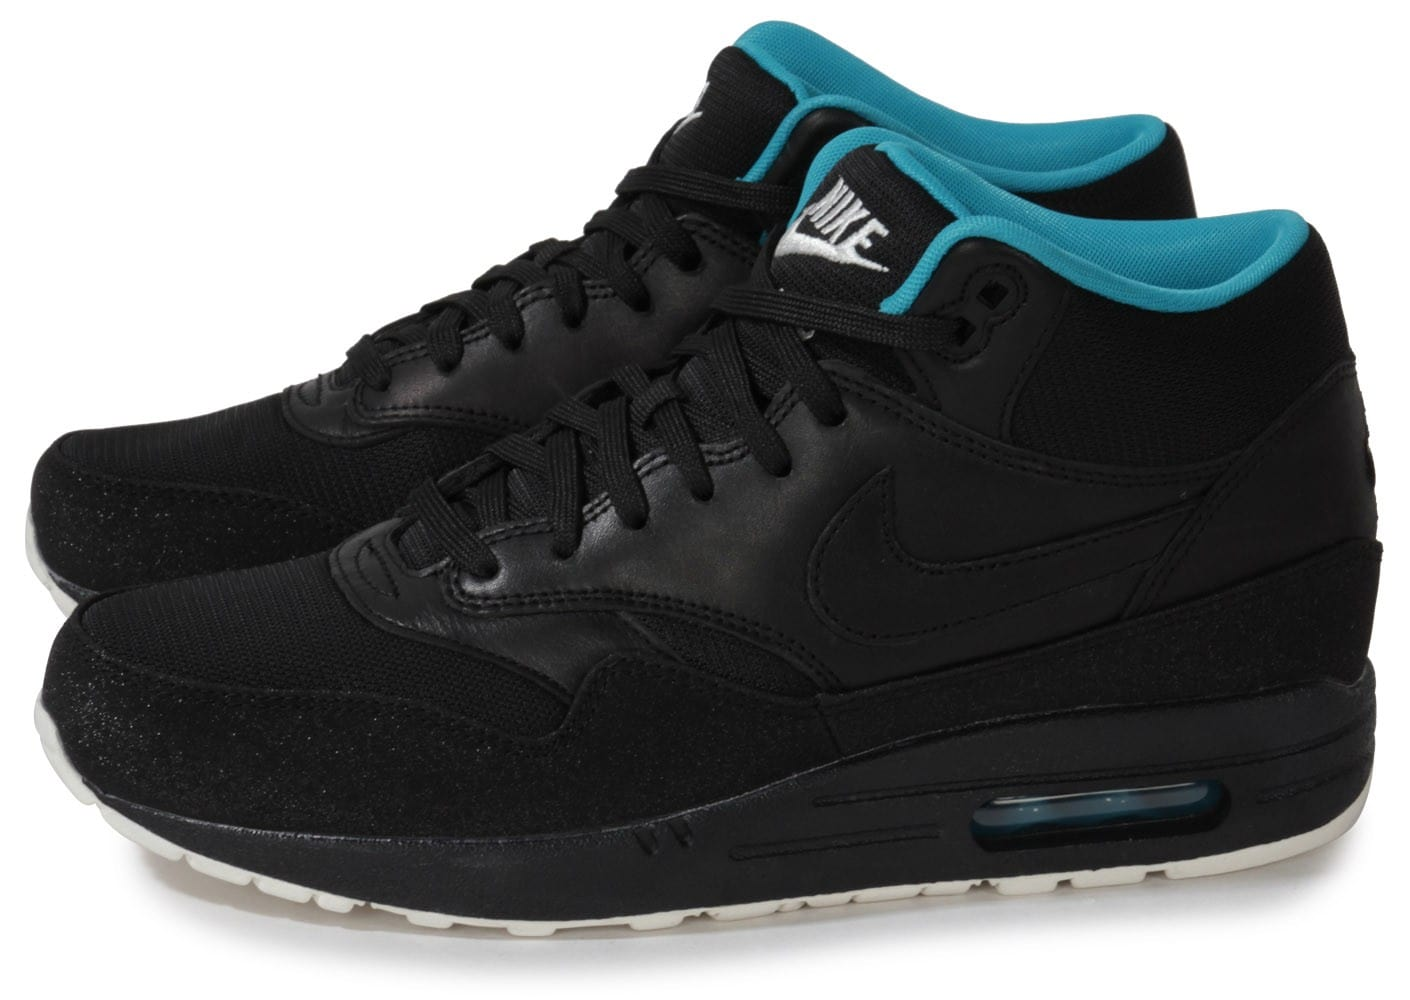 nike air max 1 mid fb cristiano ronaldo chaussures baskets homme chausport. Black Bedroom Furniture Sets. Home Design Ideas